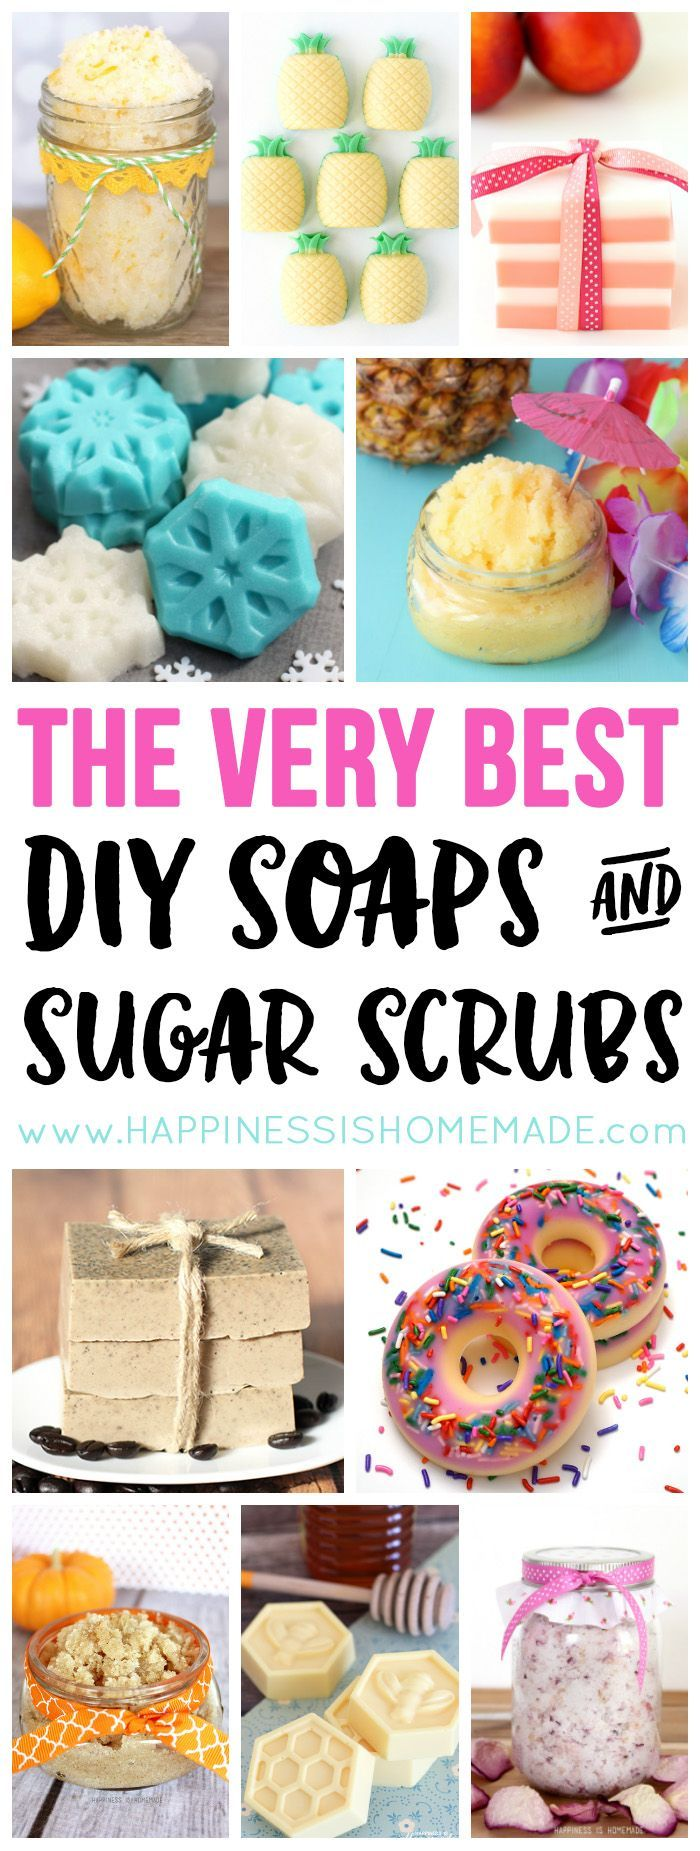 These quick, easy, and inexpensive DIY soaps and sugar scrub recipes are the…